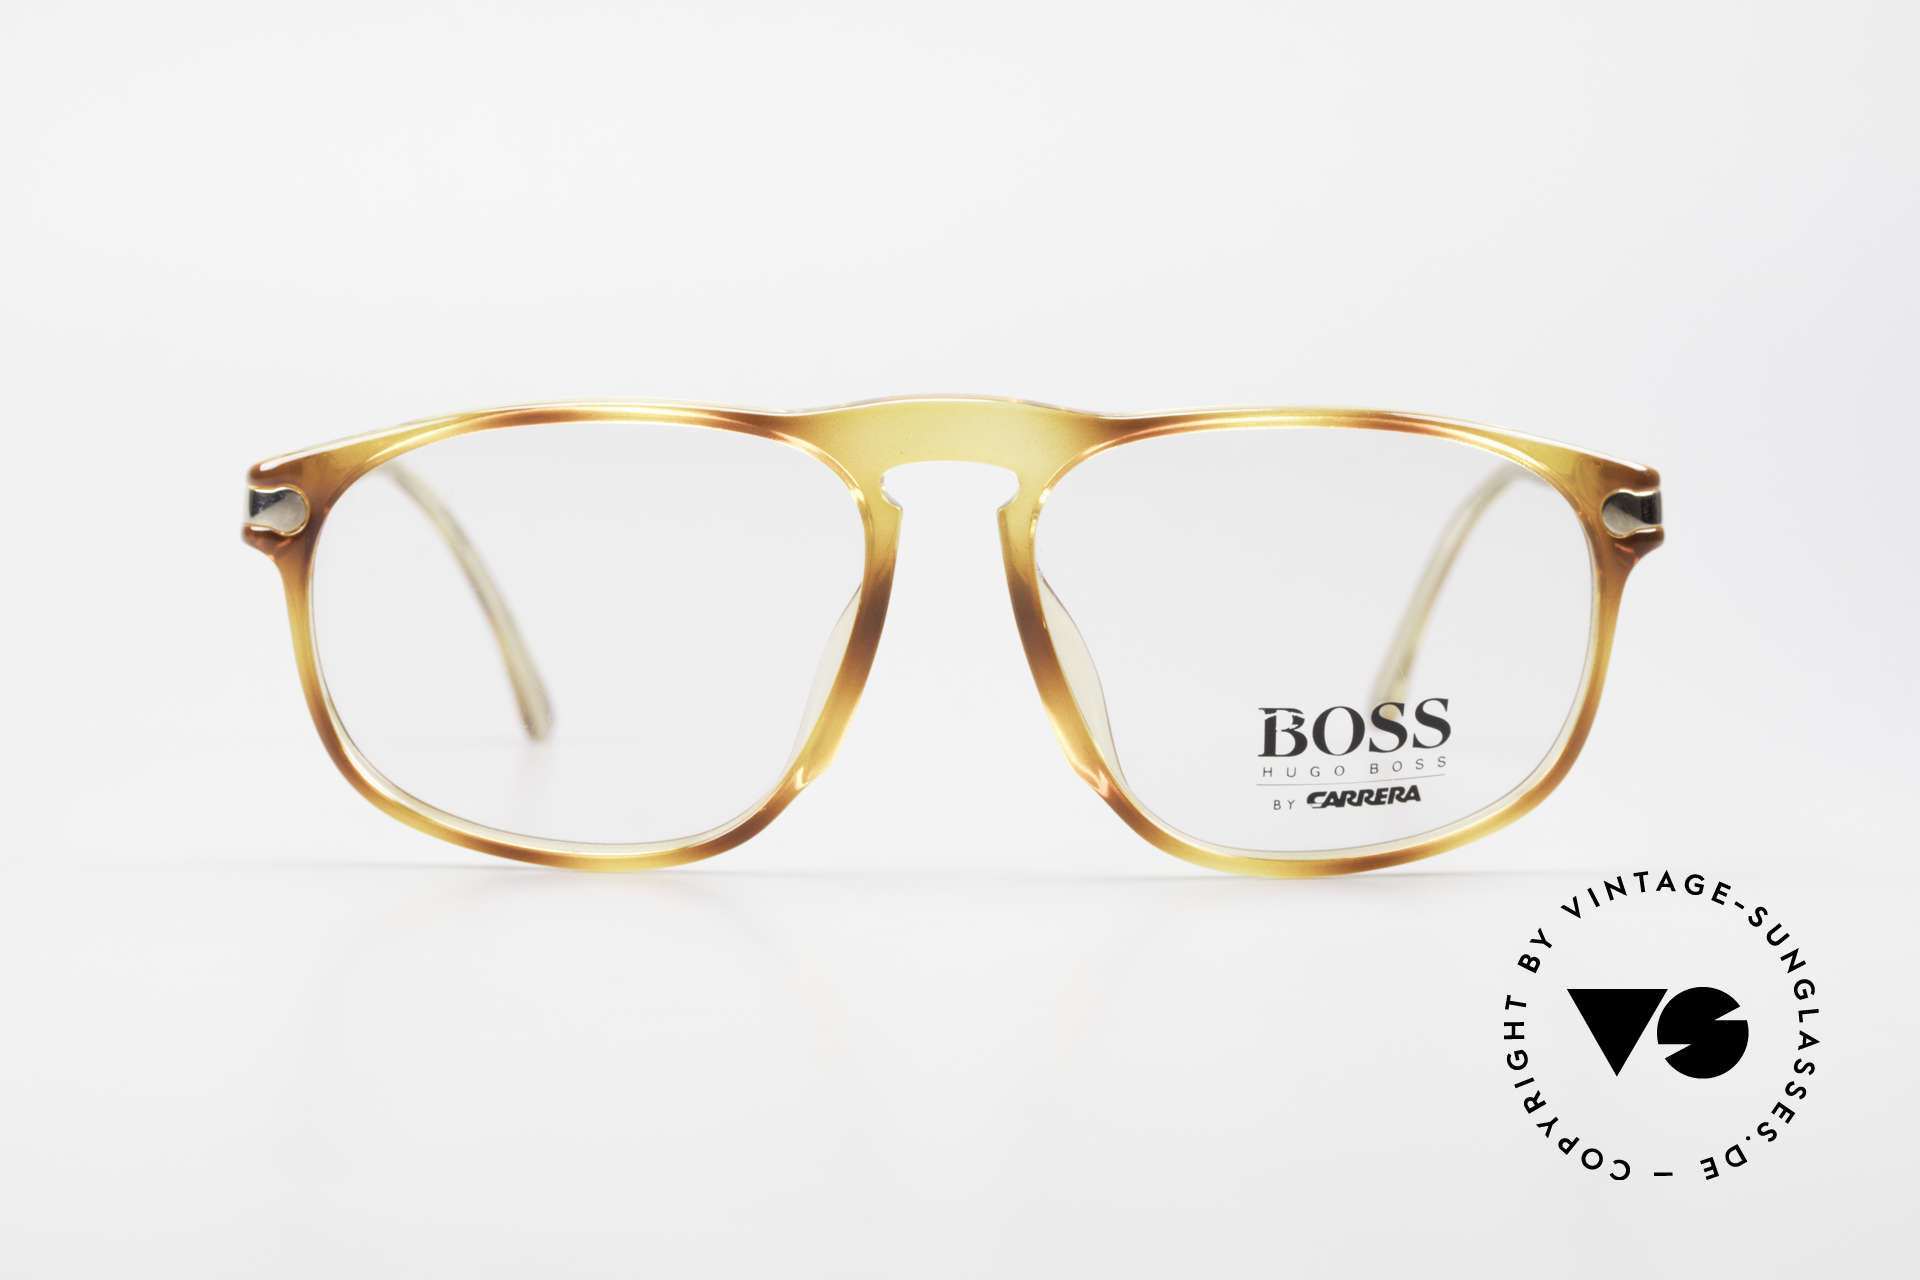 BOSS 5102 Square Vintage Optyl Glasses, cooperation between BOSS & Carrera, at that time, Made for Men